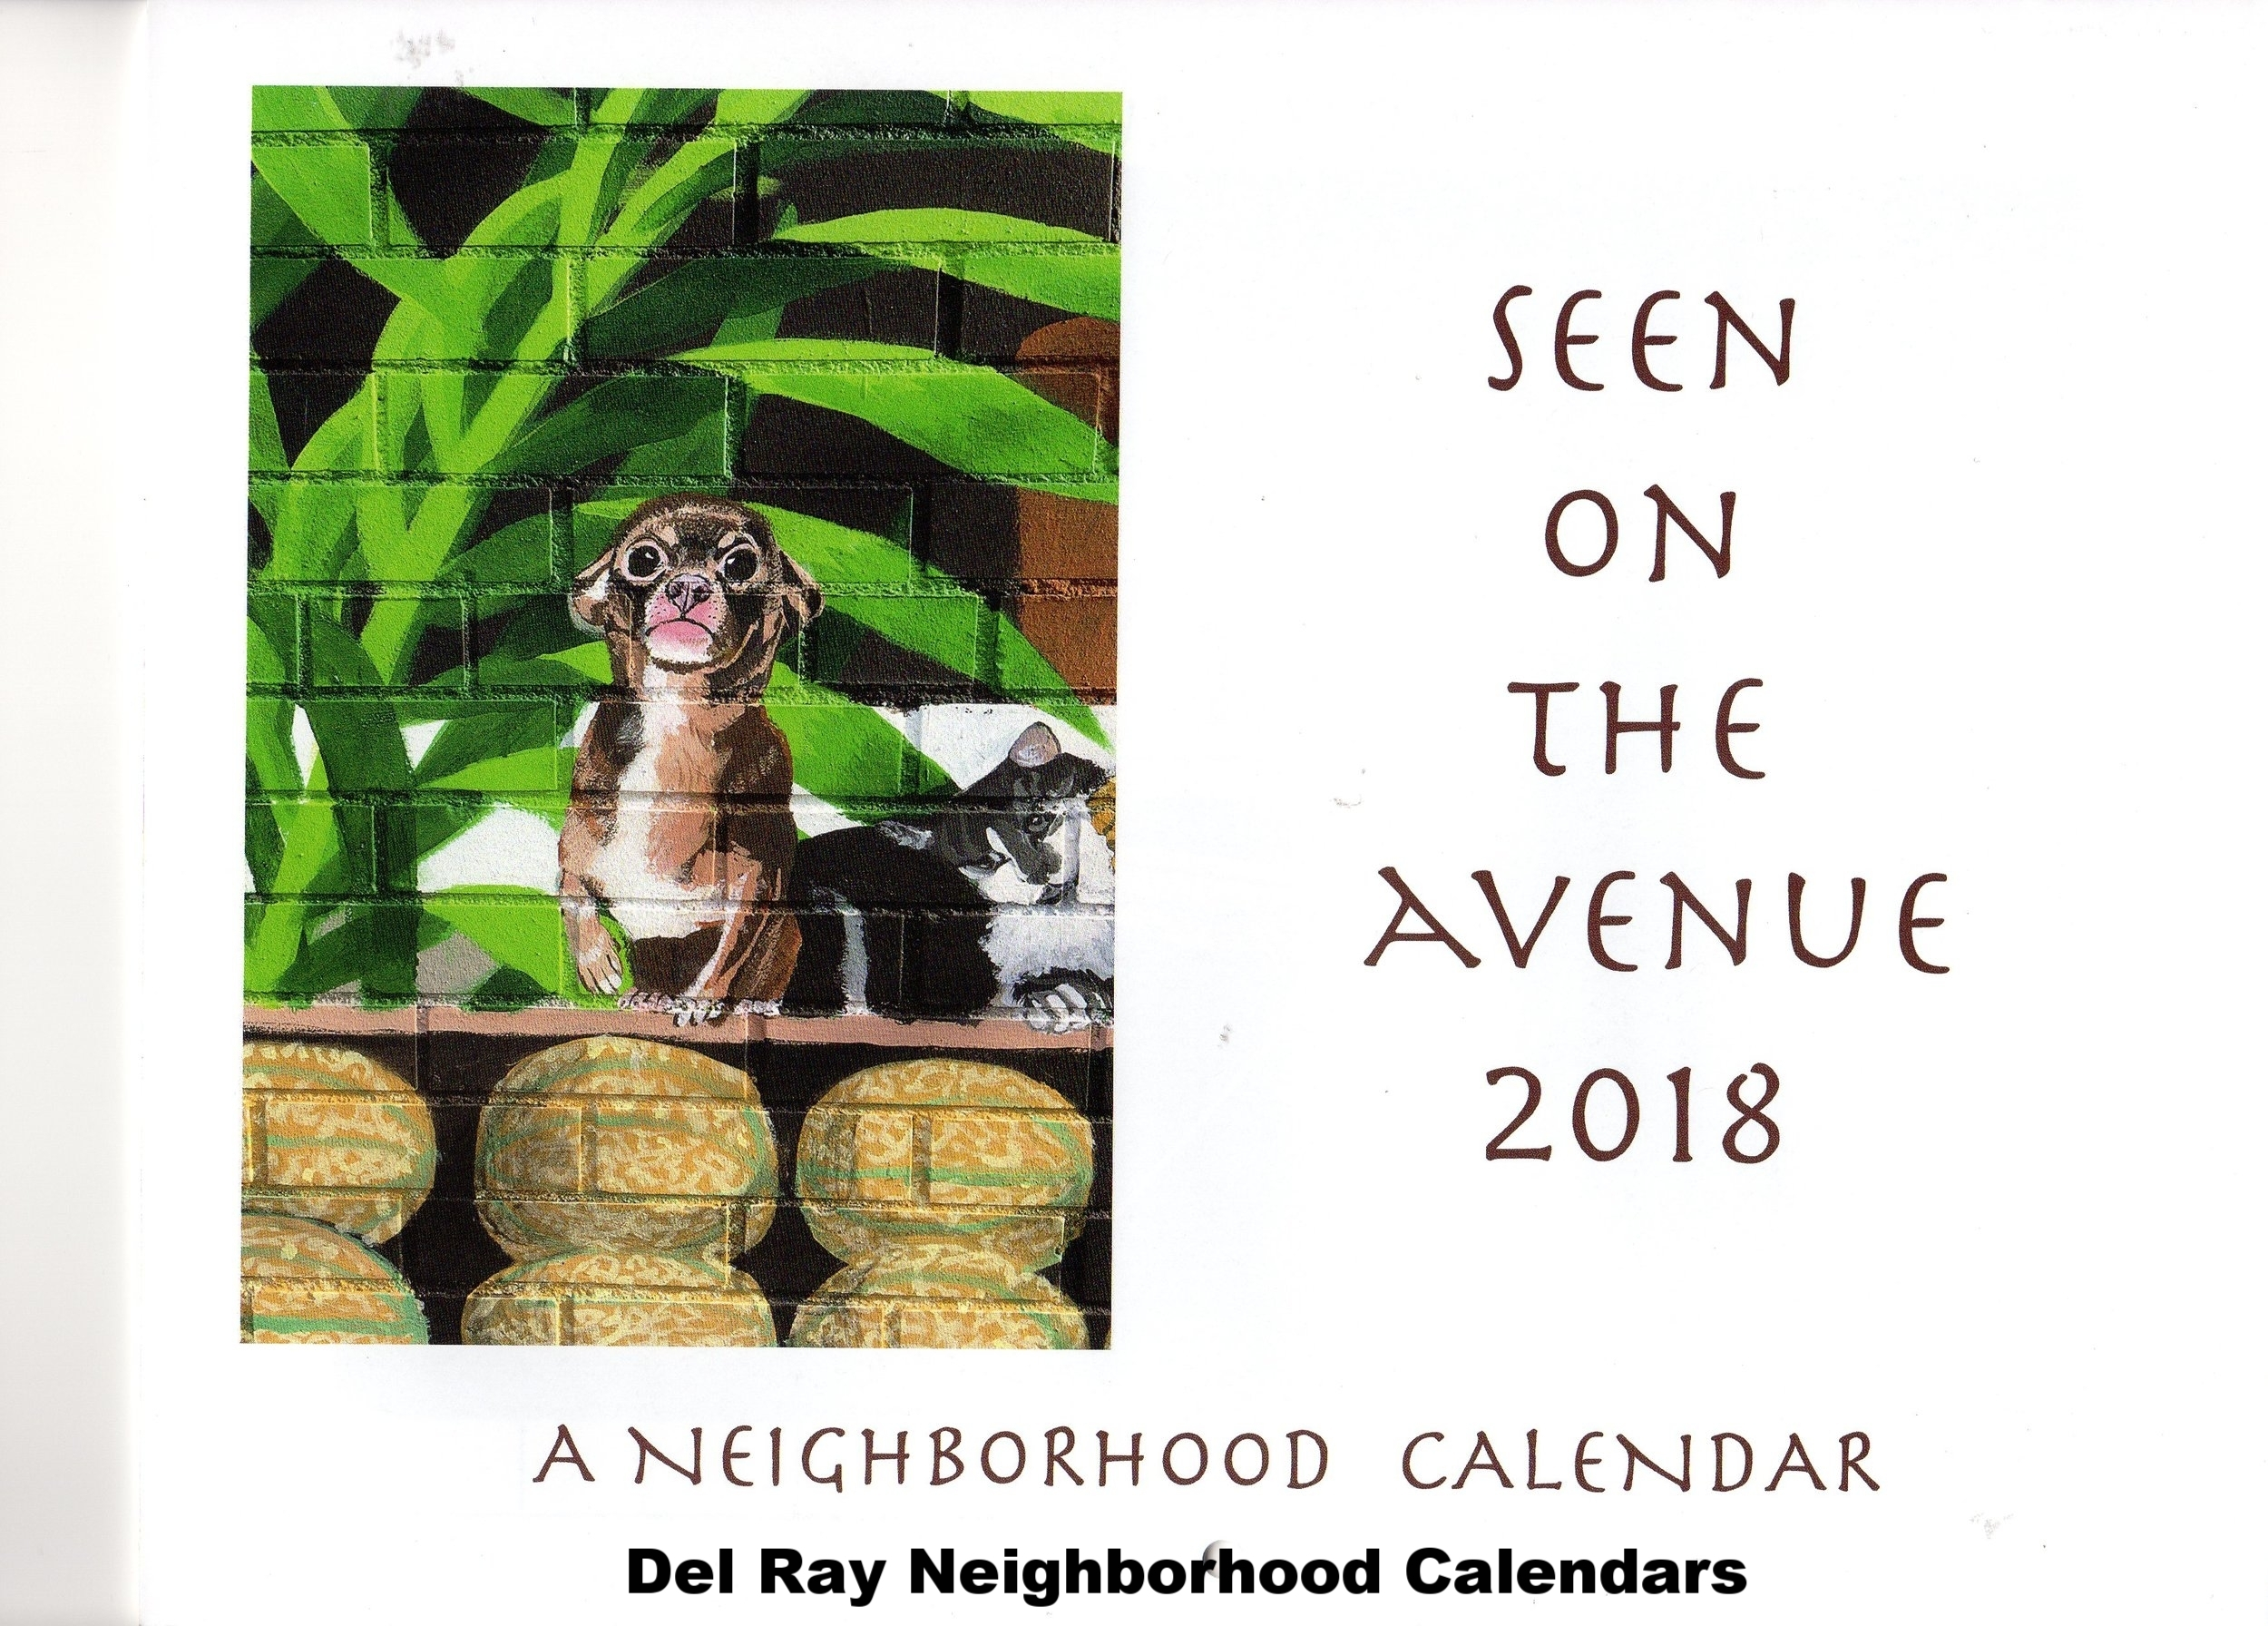 Del Ray Neighborhood Calendar